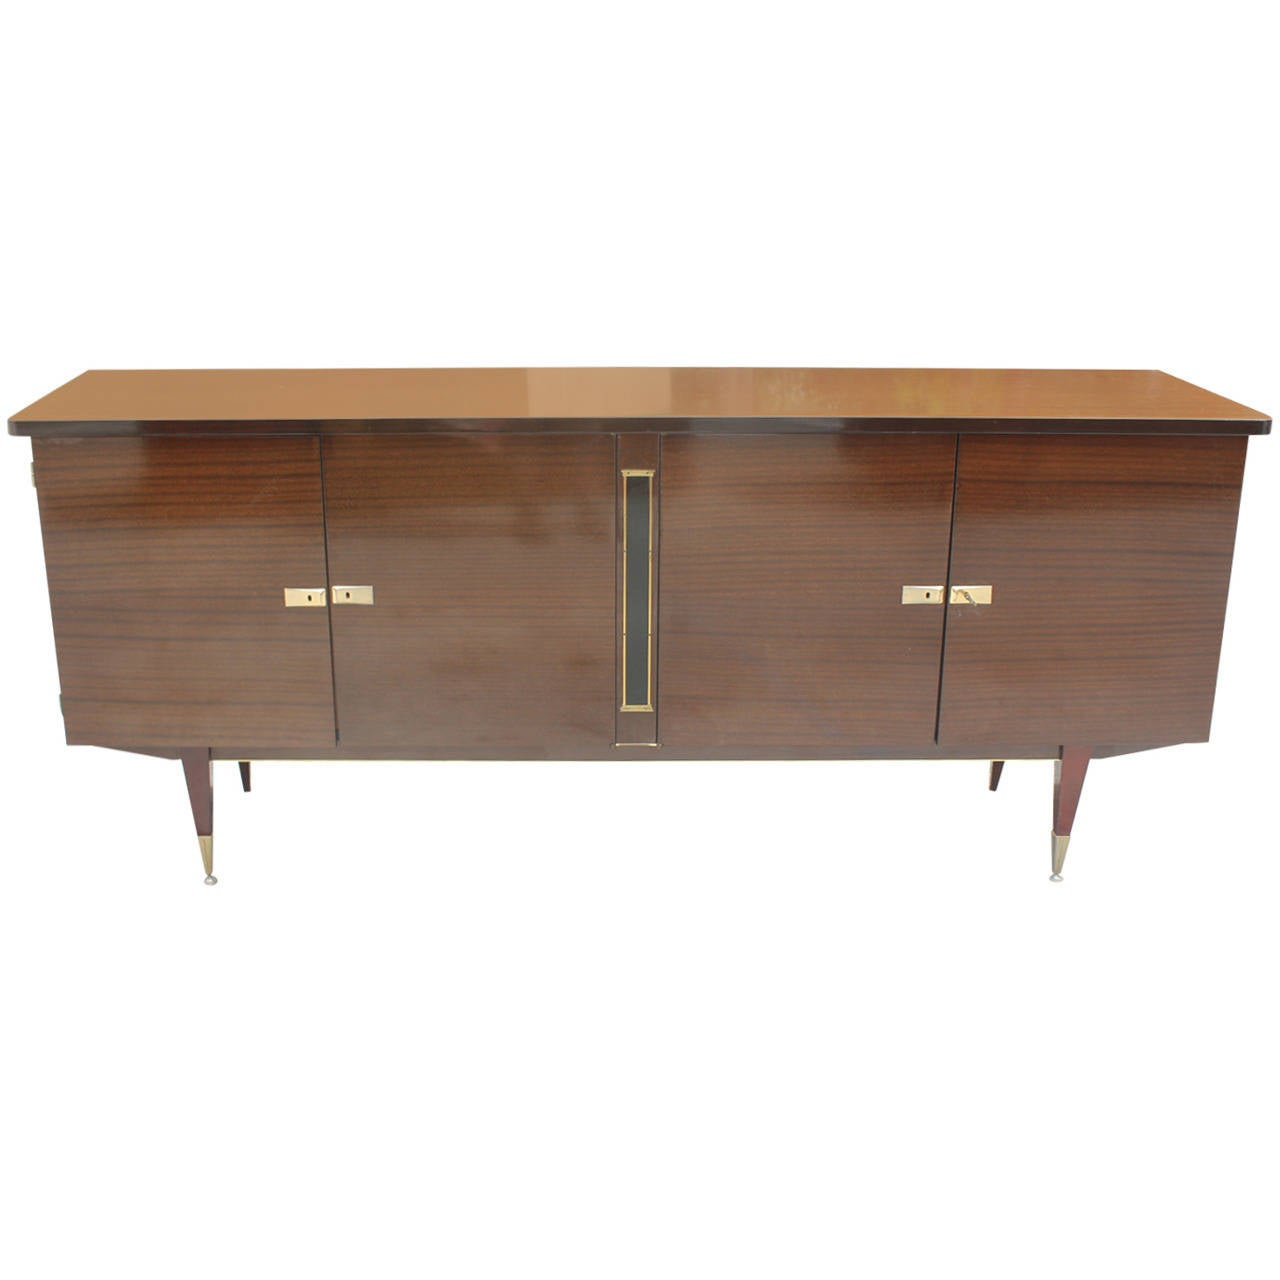 french art deco or art moderne mahogany buffet circa. Black Bedroom Furniture Sets. Home Design Ideas